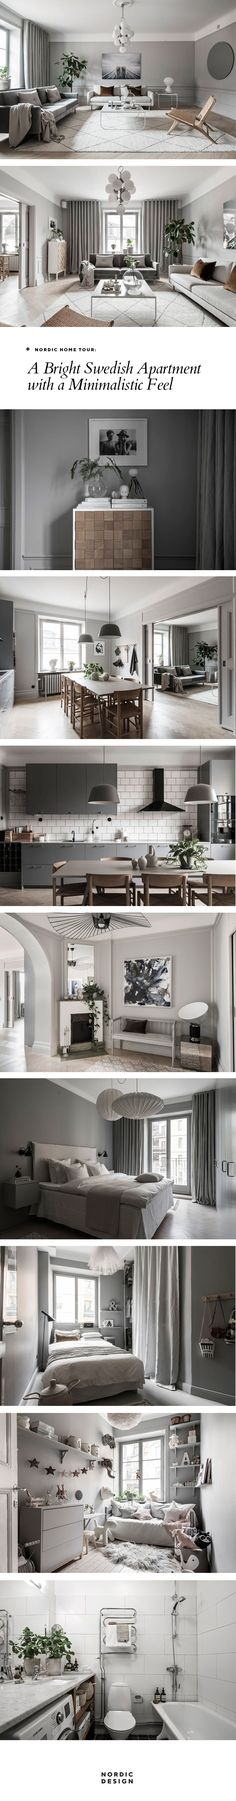 Nordic home tour: A bright Swedish apartment with a minimalistic feel | NORDICDESIGN